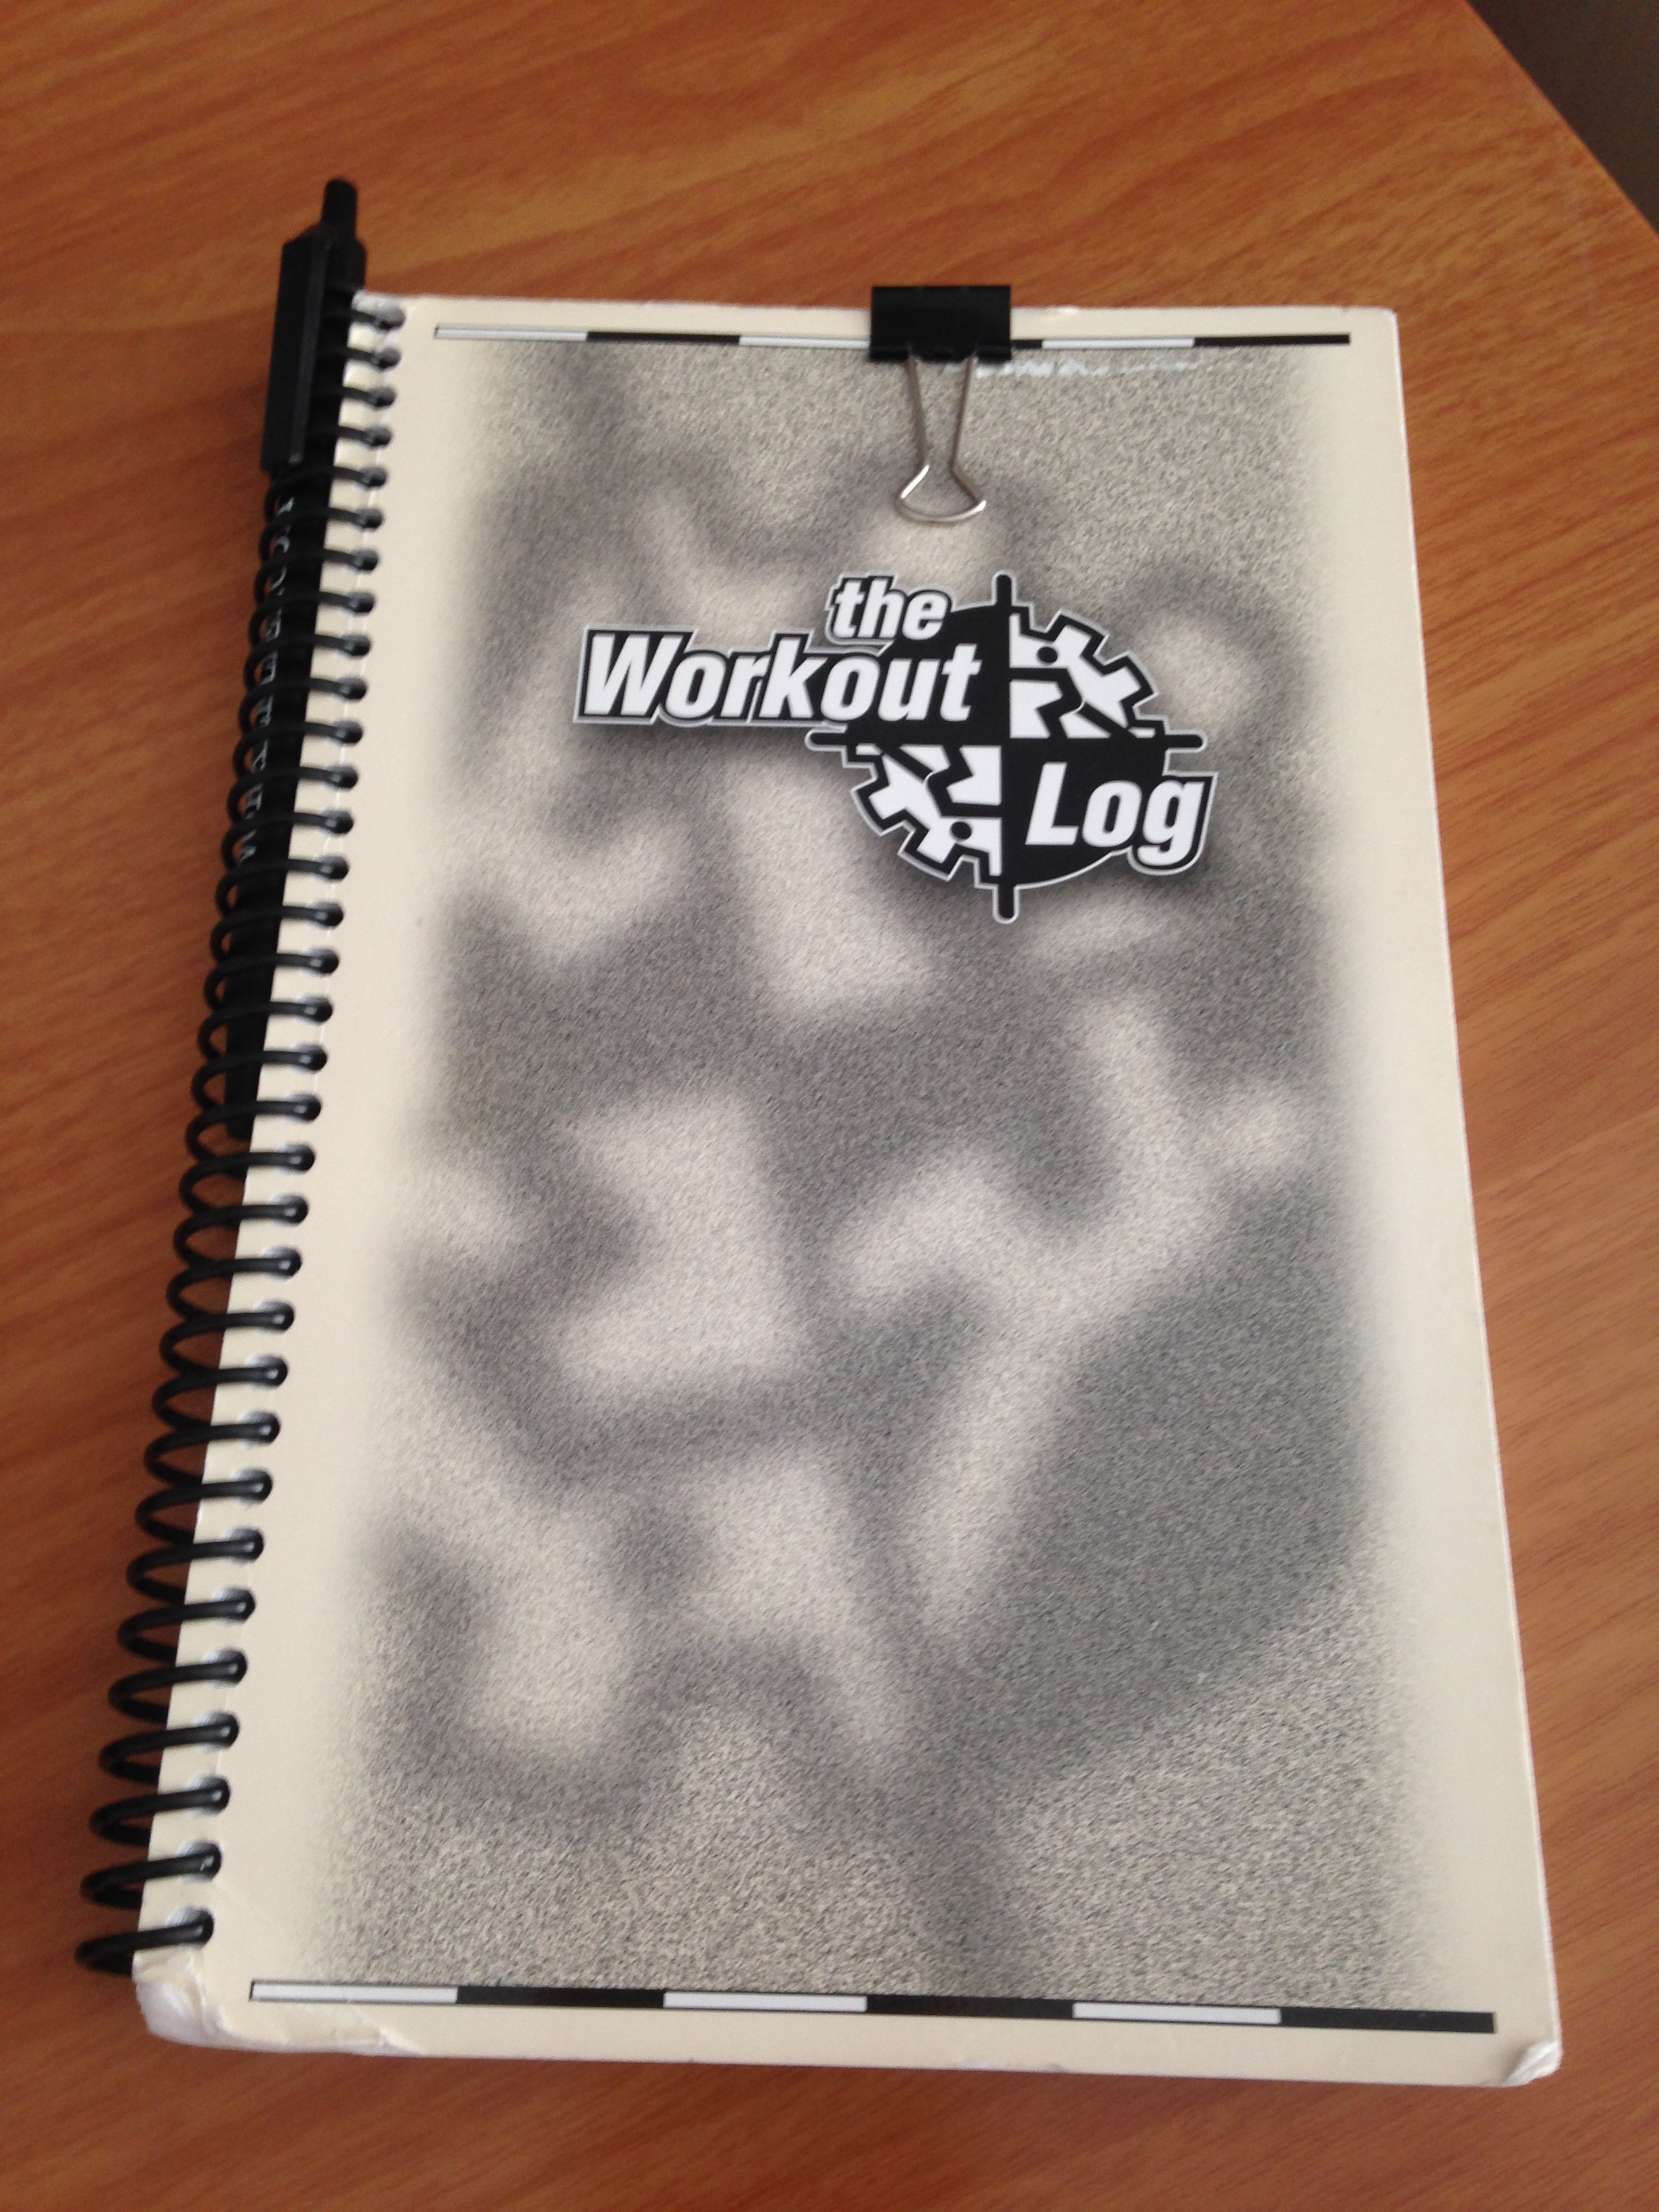 Workout notebook